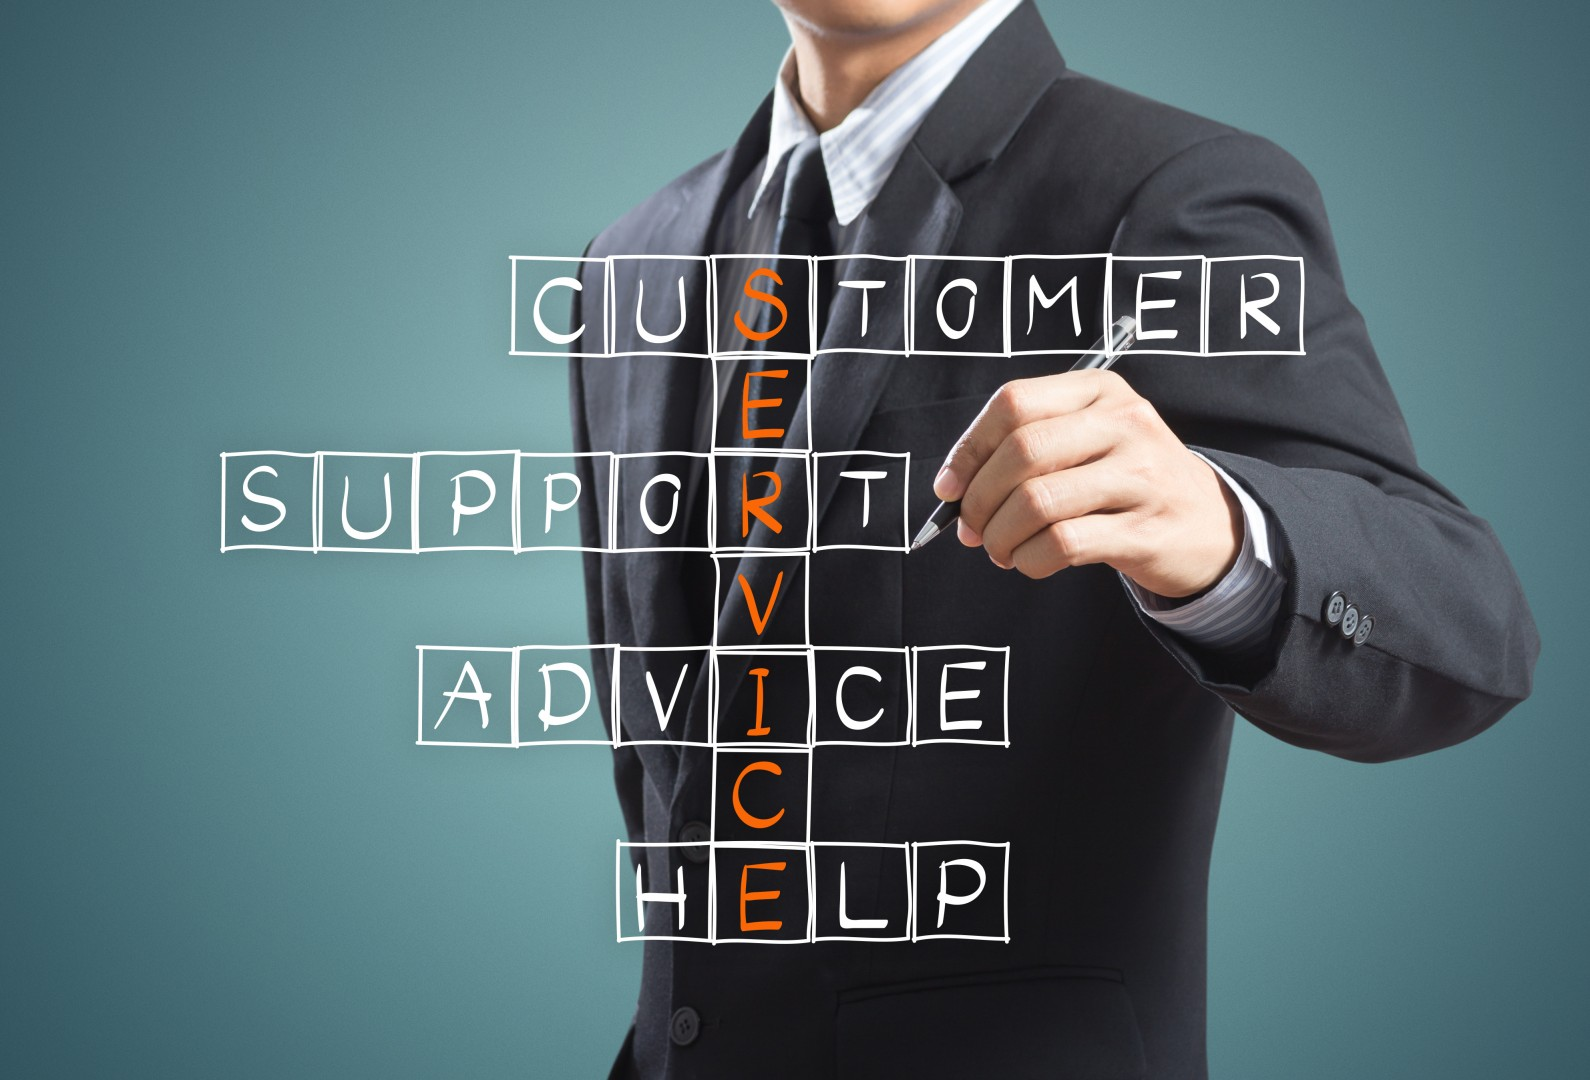 How To Provide Better Customer Service The Lmj